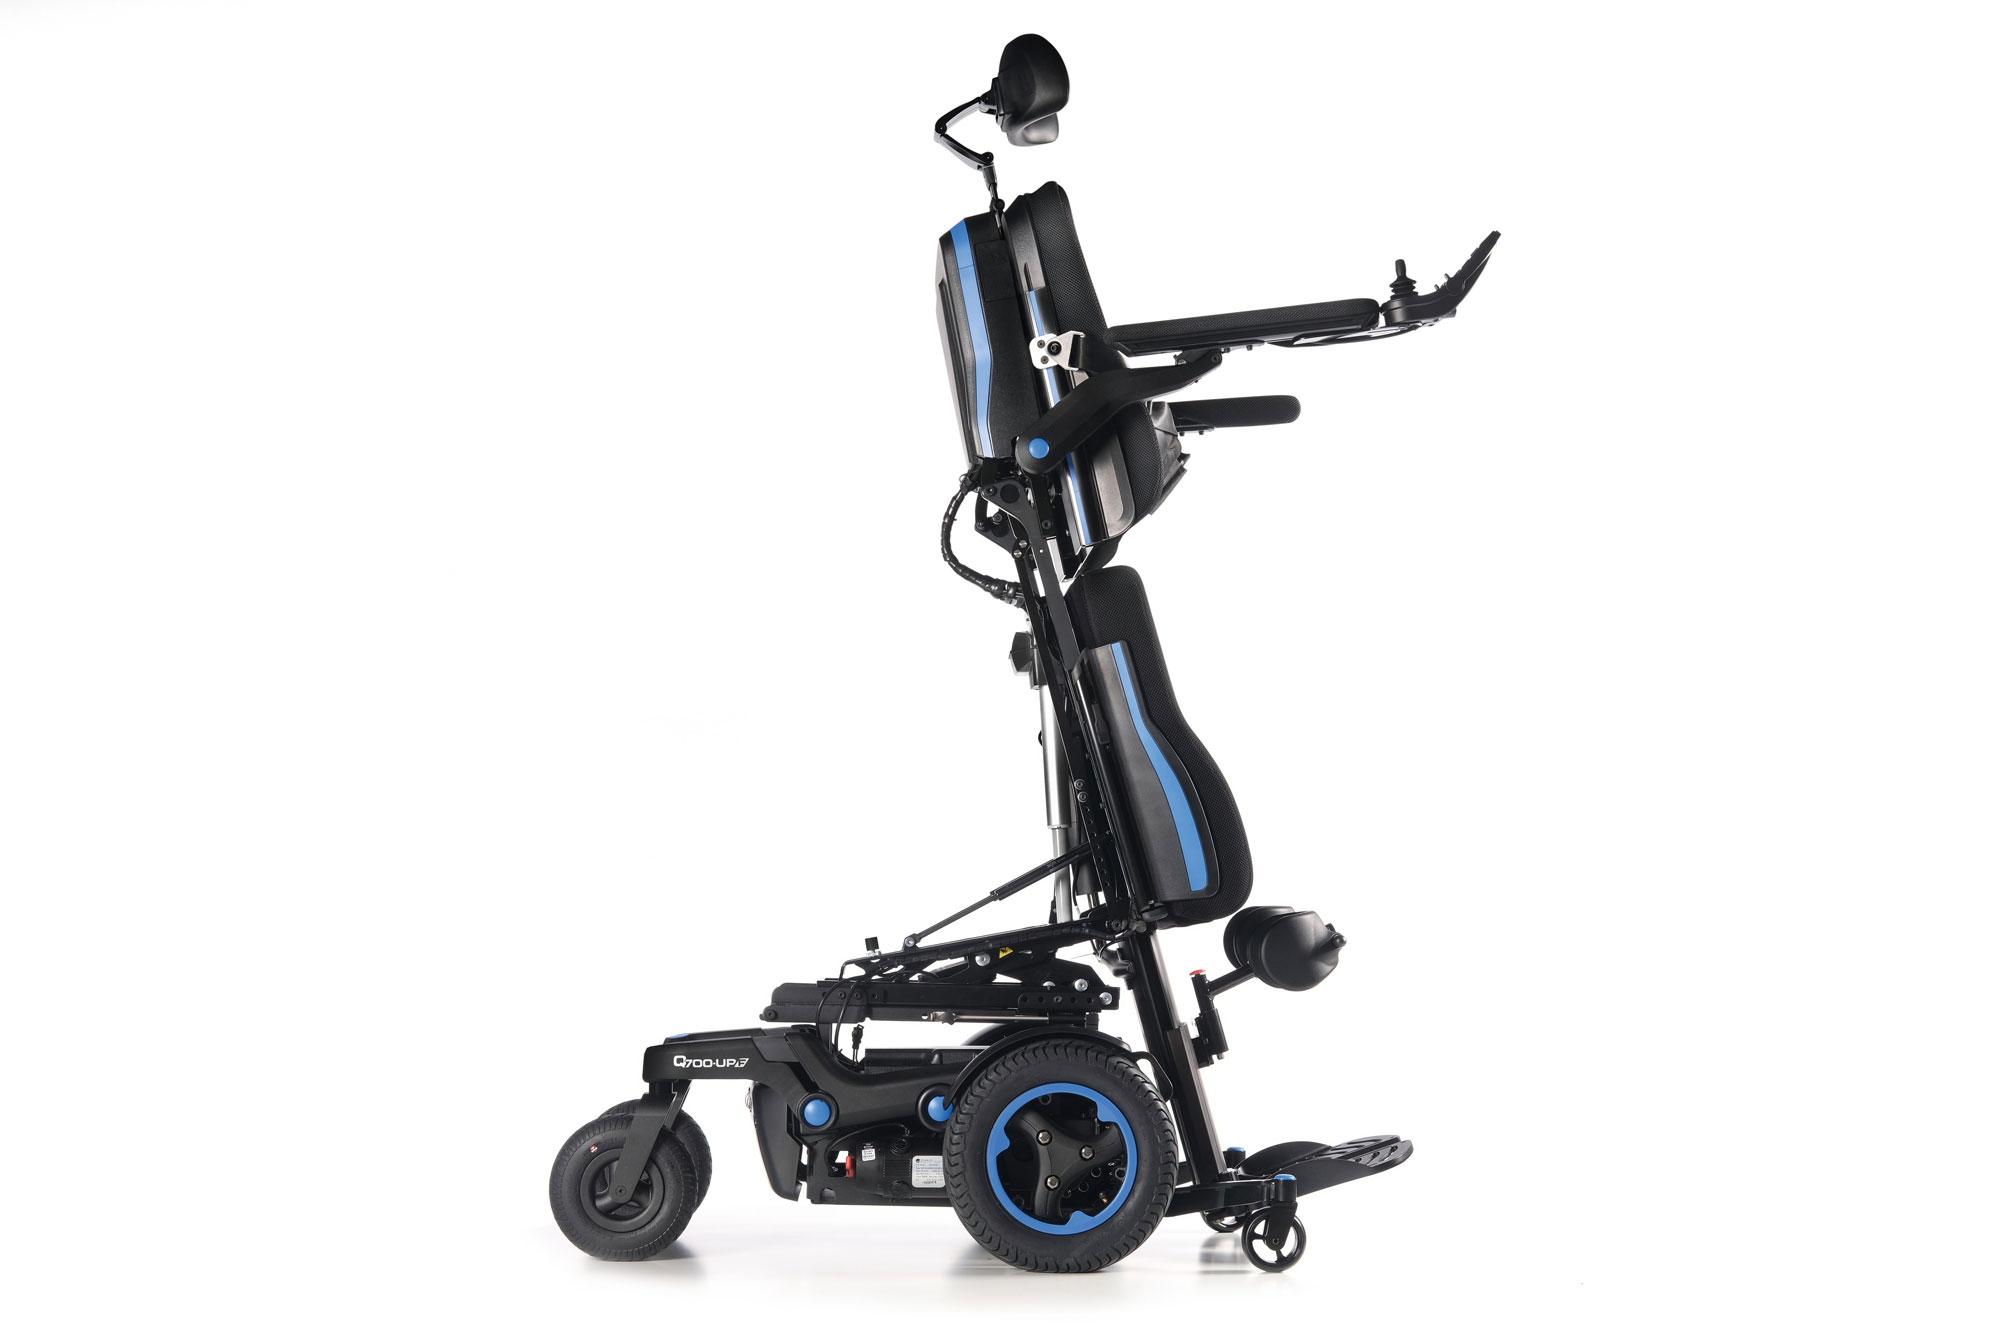 Quickie Q700-UP F SEDEO ERGO Standing Wheelchair